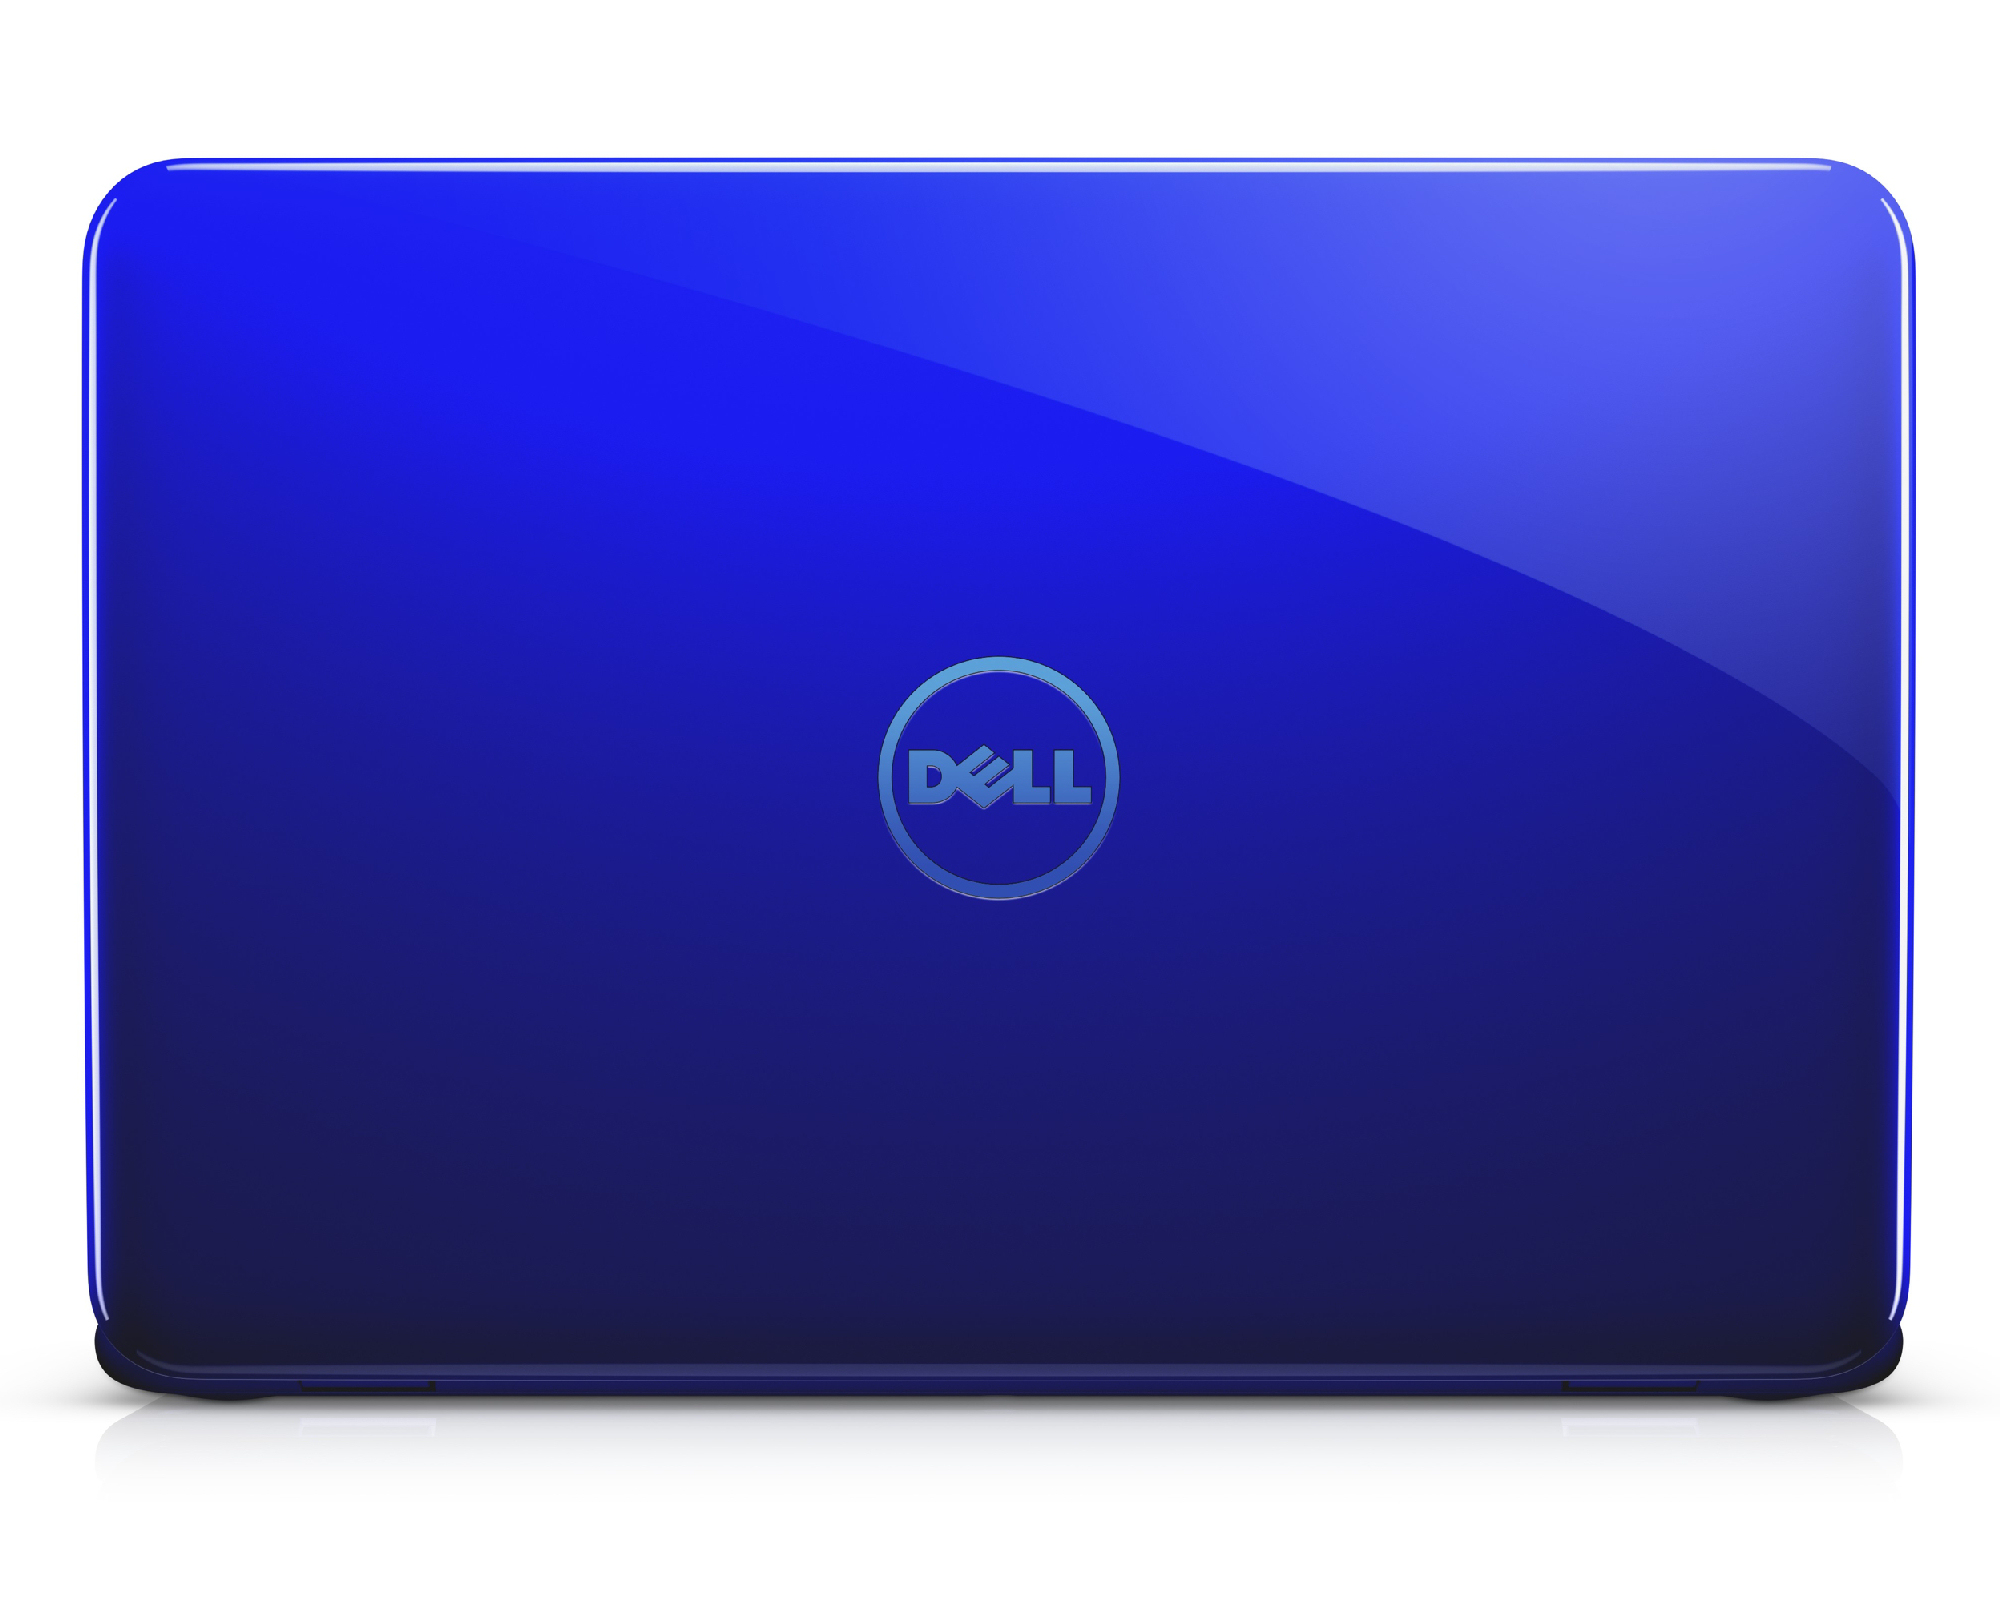 Dell Inspiron 11 3162 Subnotebook Review Notebookcheck